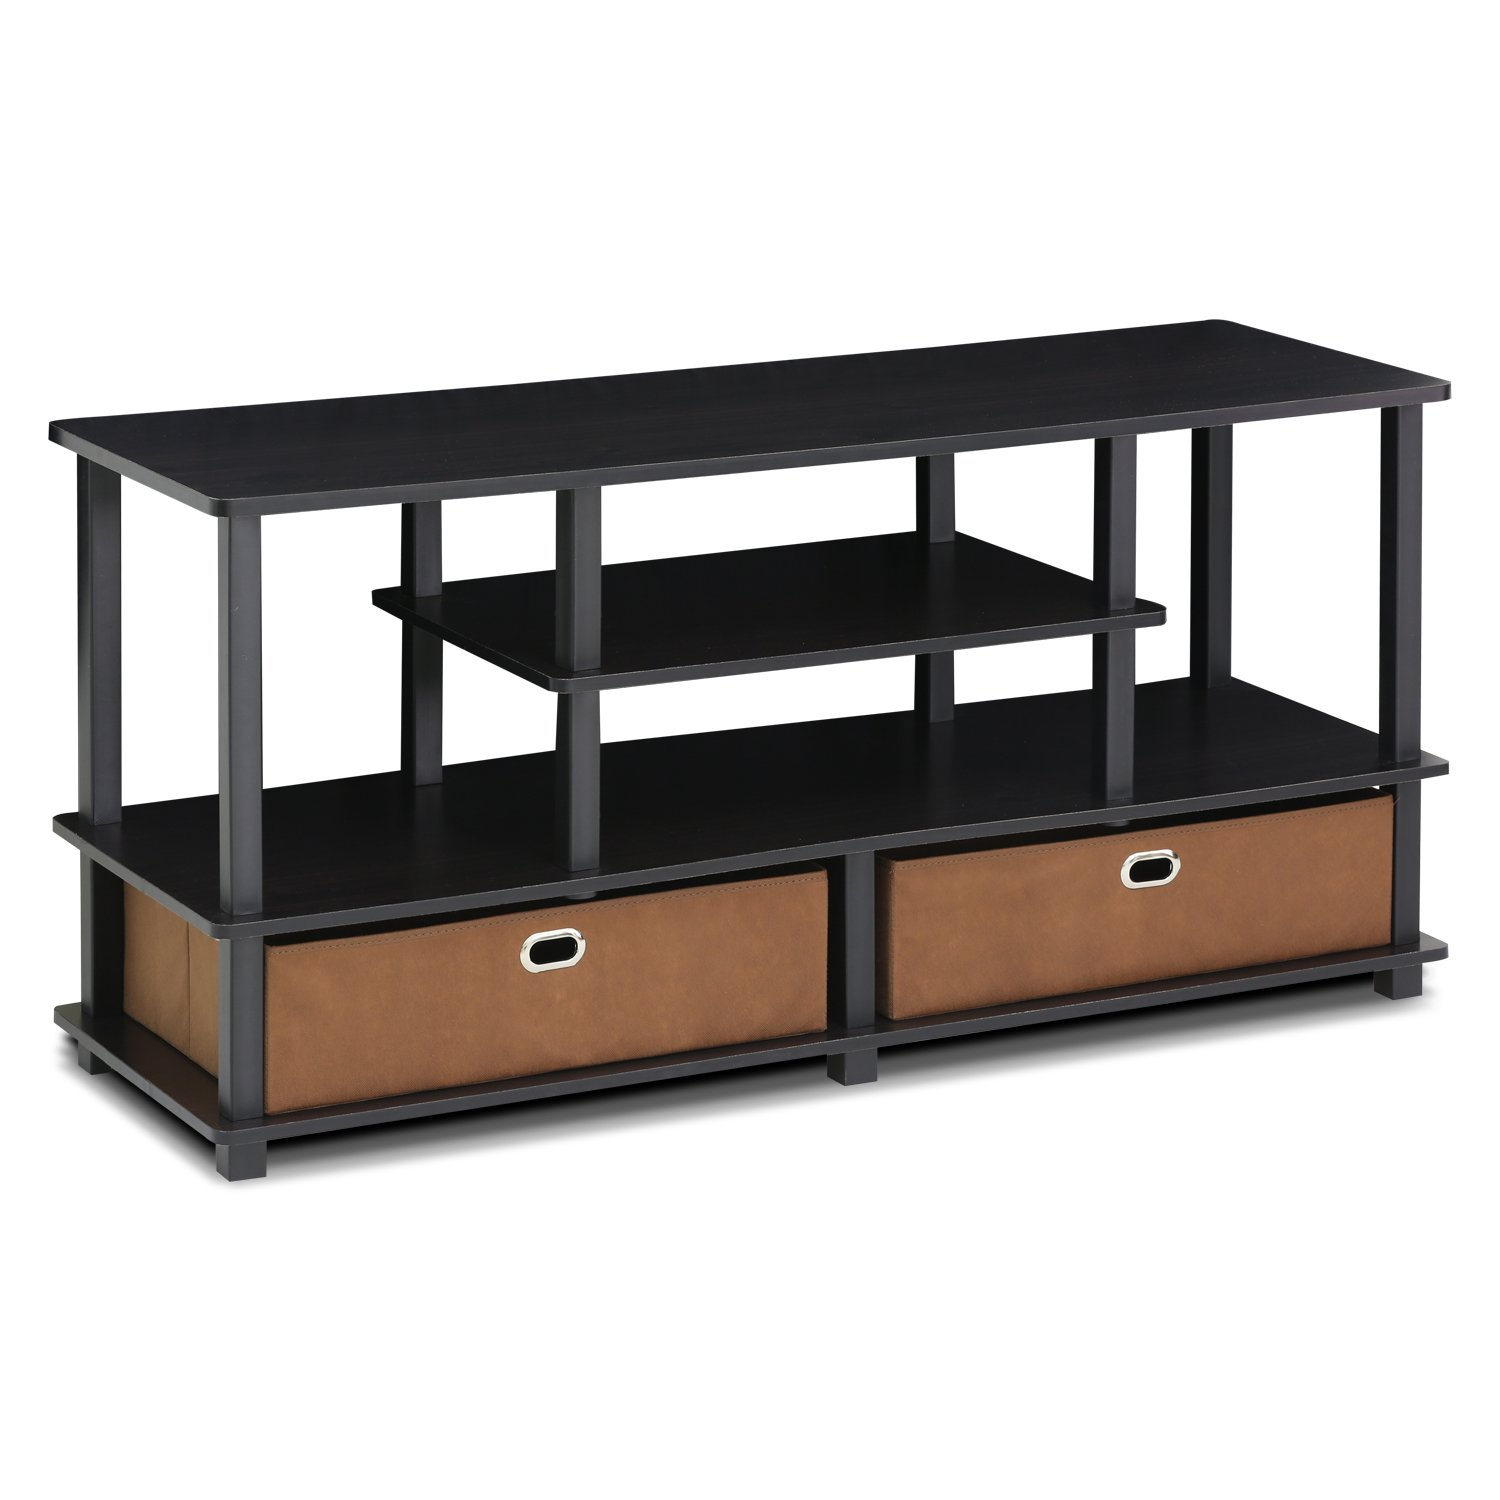 FURINNO JAYA Large Stand for up to 50-Inch TV, Black